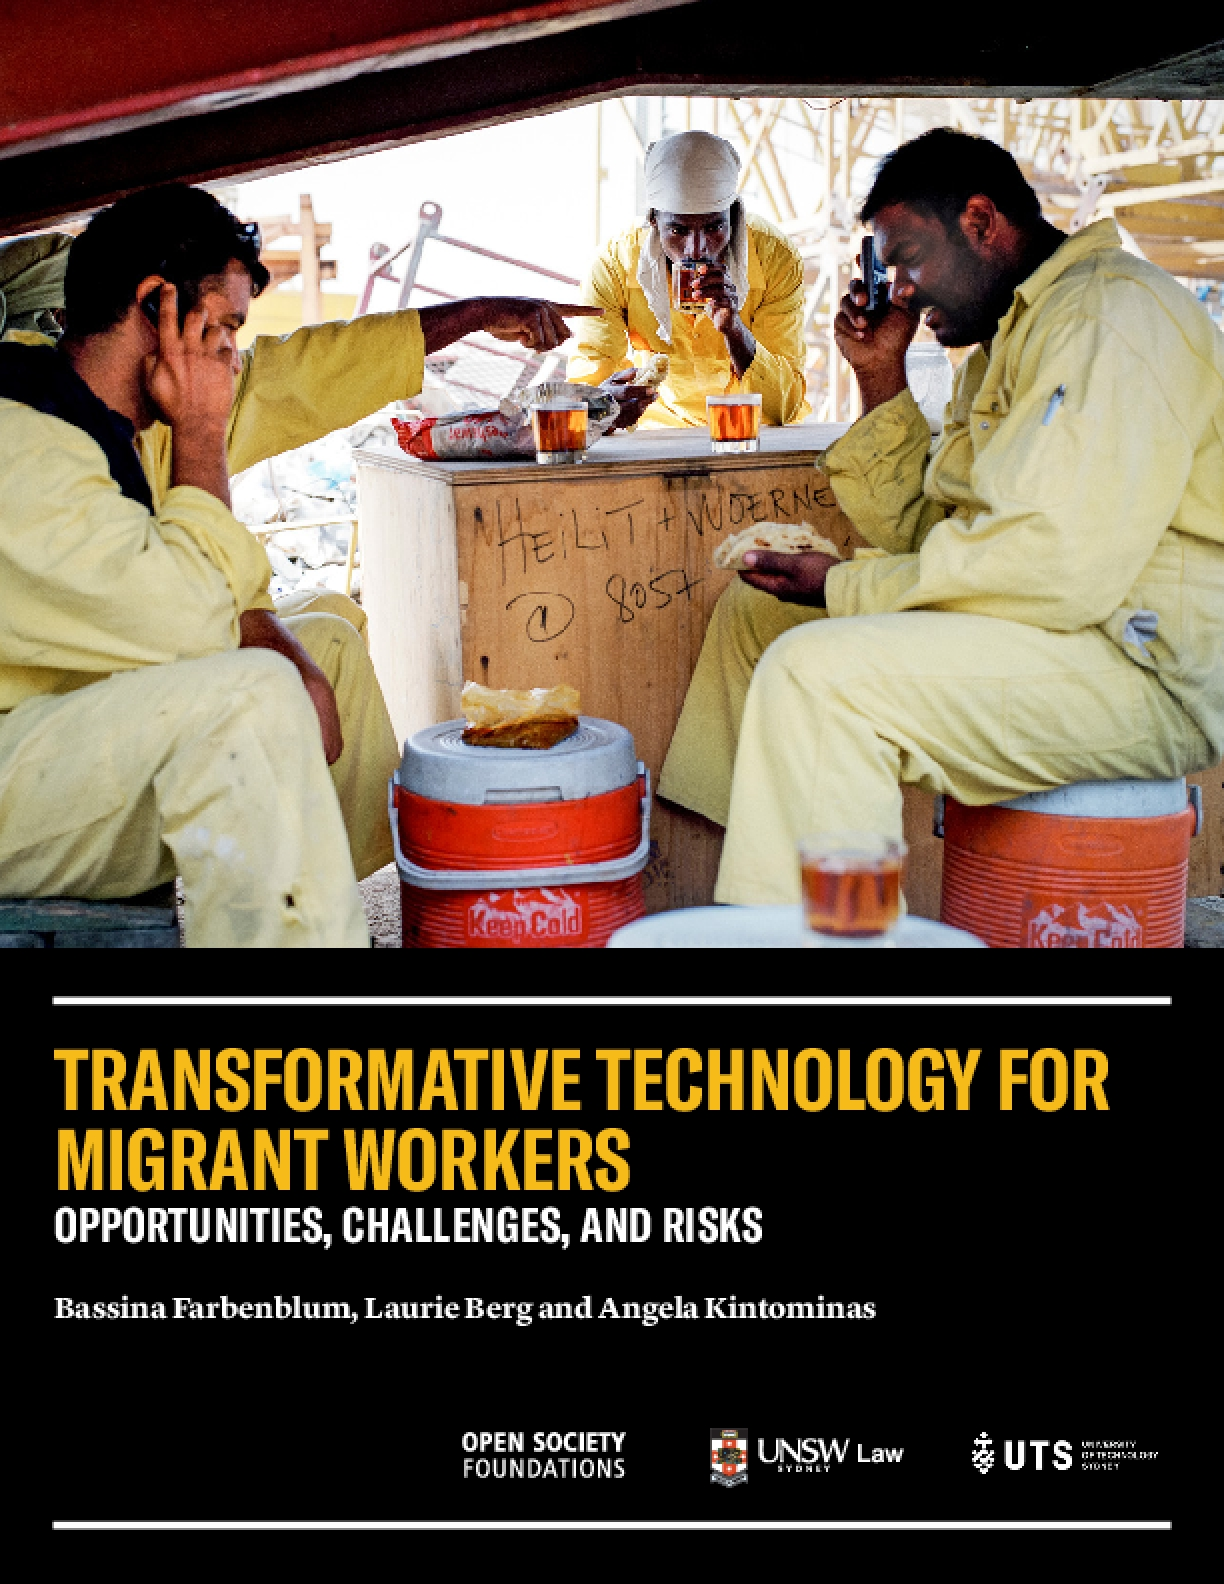 Transformative Technology for Migrant Workers: Opportunities, Challenges, and Risks